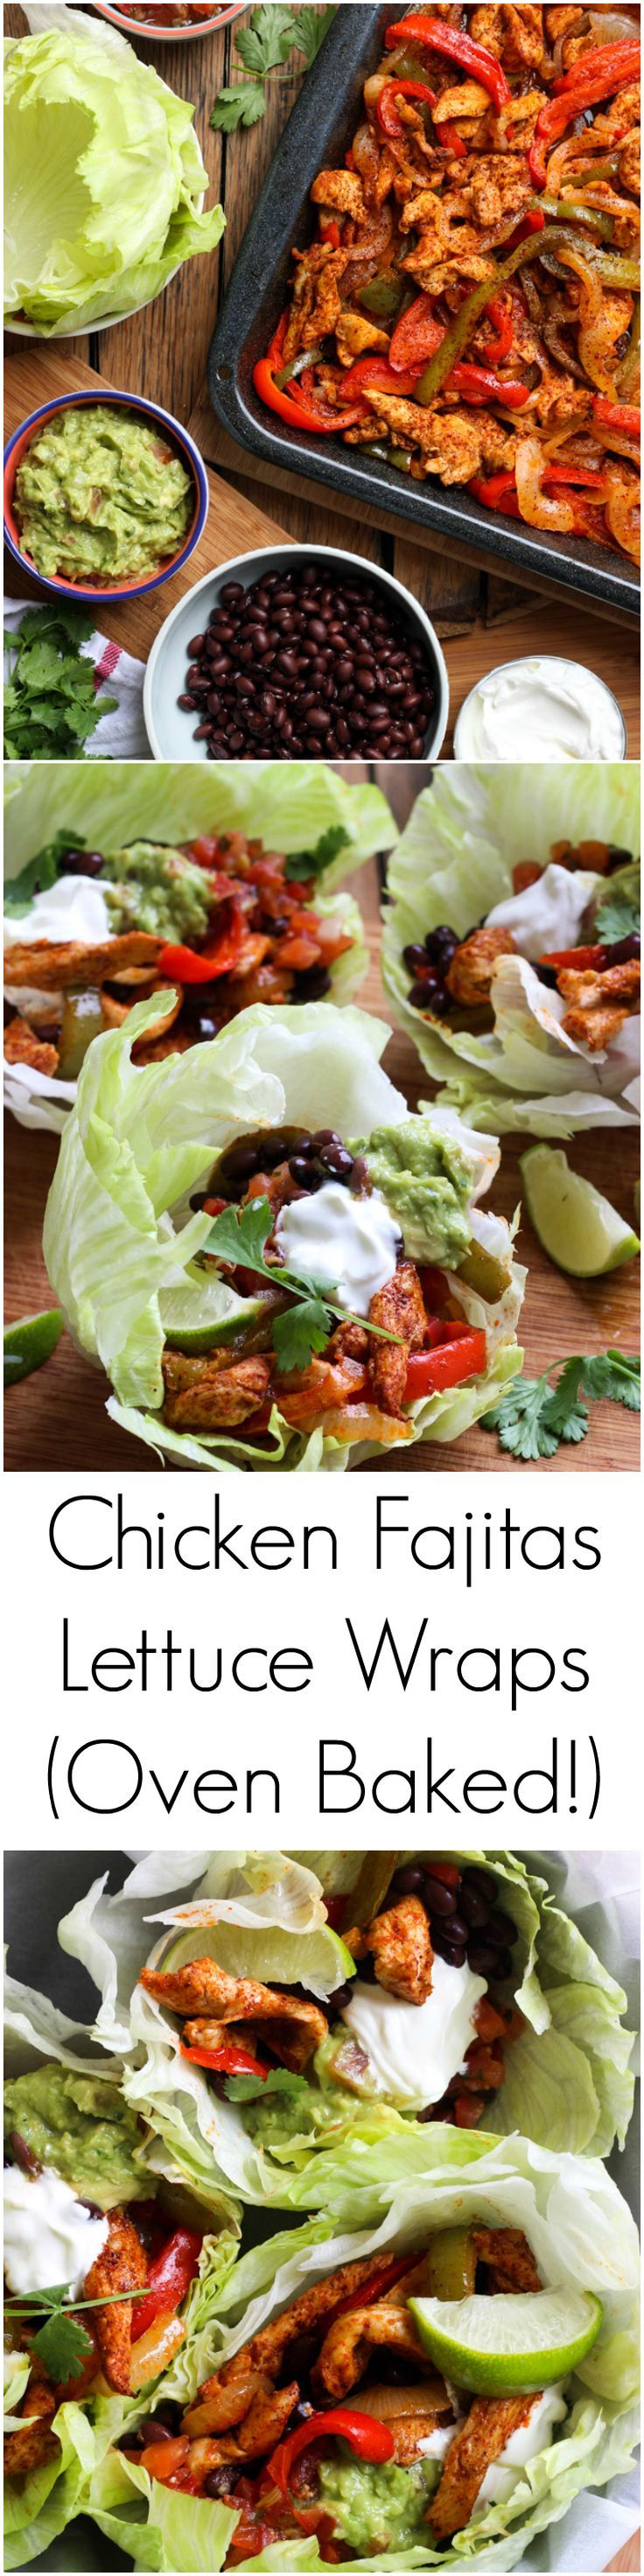 "With one little trick and you have the most juiciest oven baked chicken fajitas! Served in a lettuce wrap for a healthy dinner | <a href="""" rel=""nofollow"" target=""_blank""></a> <a href=""/littlebroken/"" title=""KatyaLittle Broken"">@Katya 